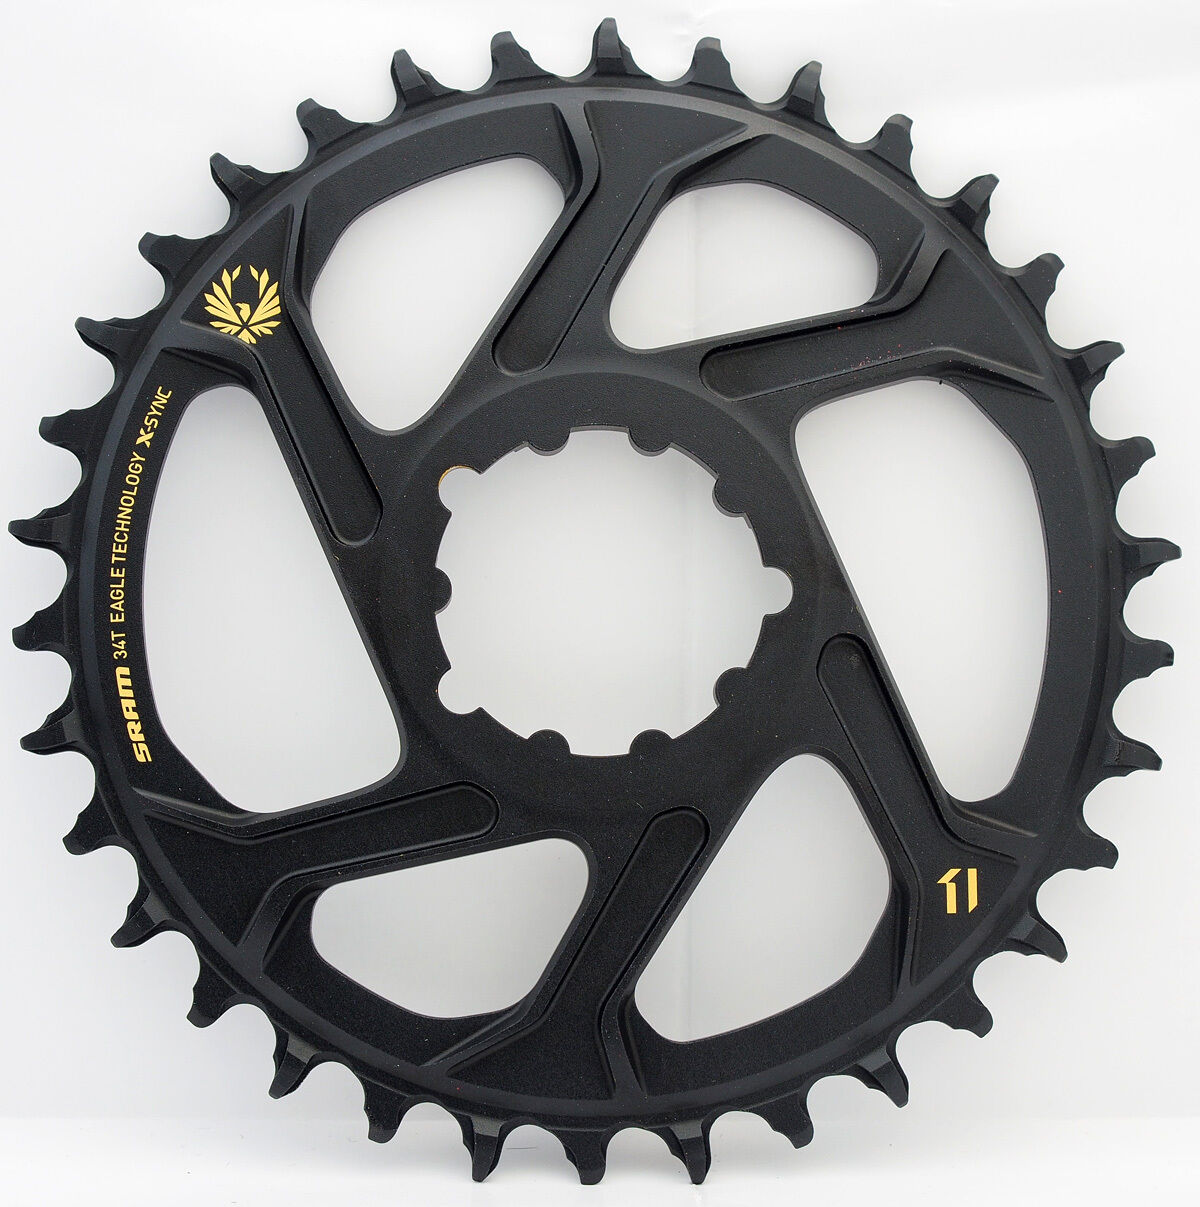 Sram X-SYNC 2 Eagle XX1 12 spd Direct Mount 34T Chainring 3mm Offset Boost gold